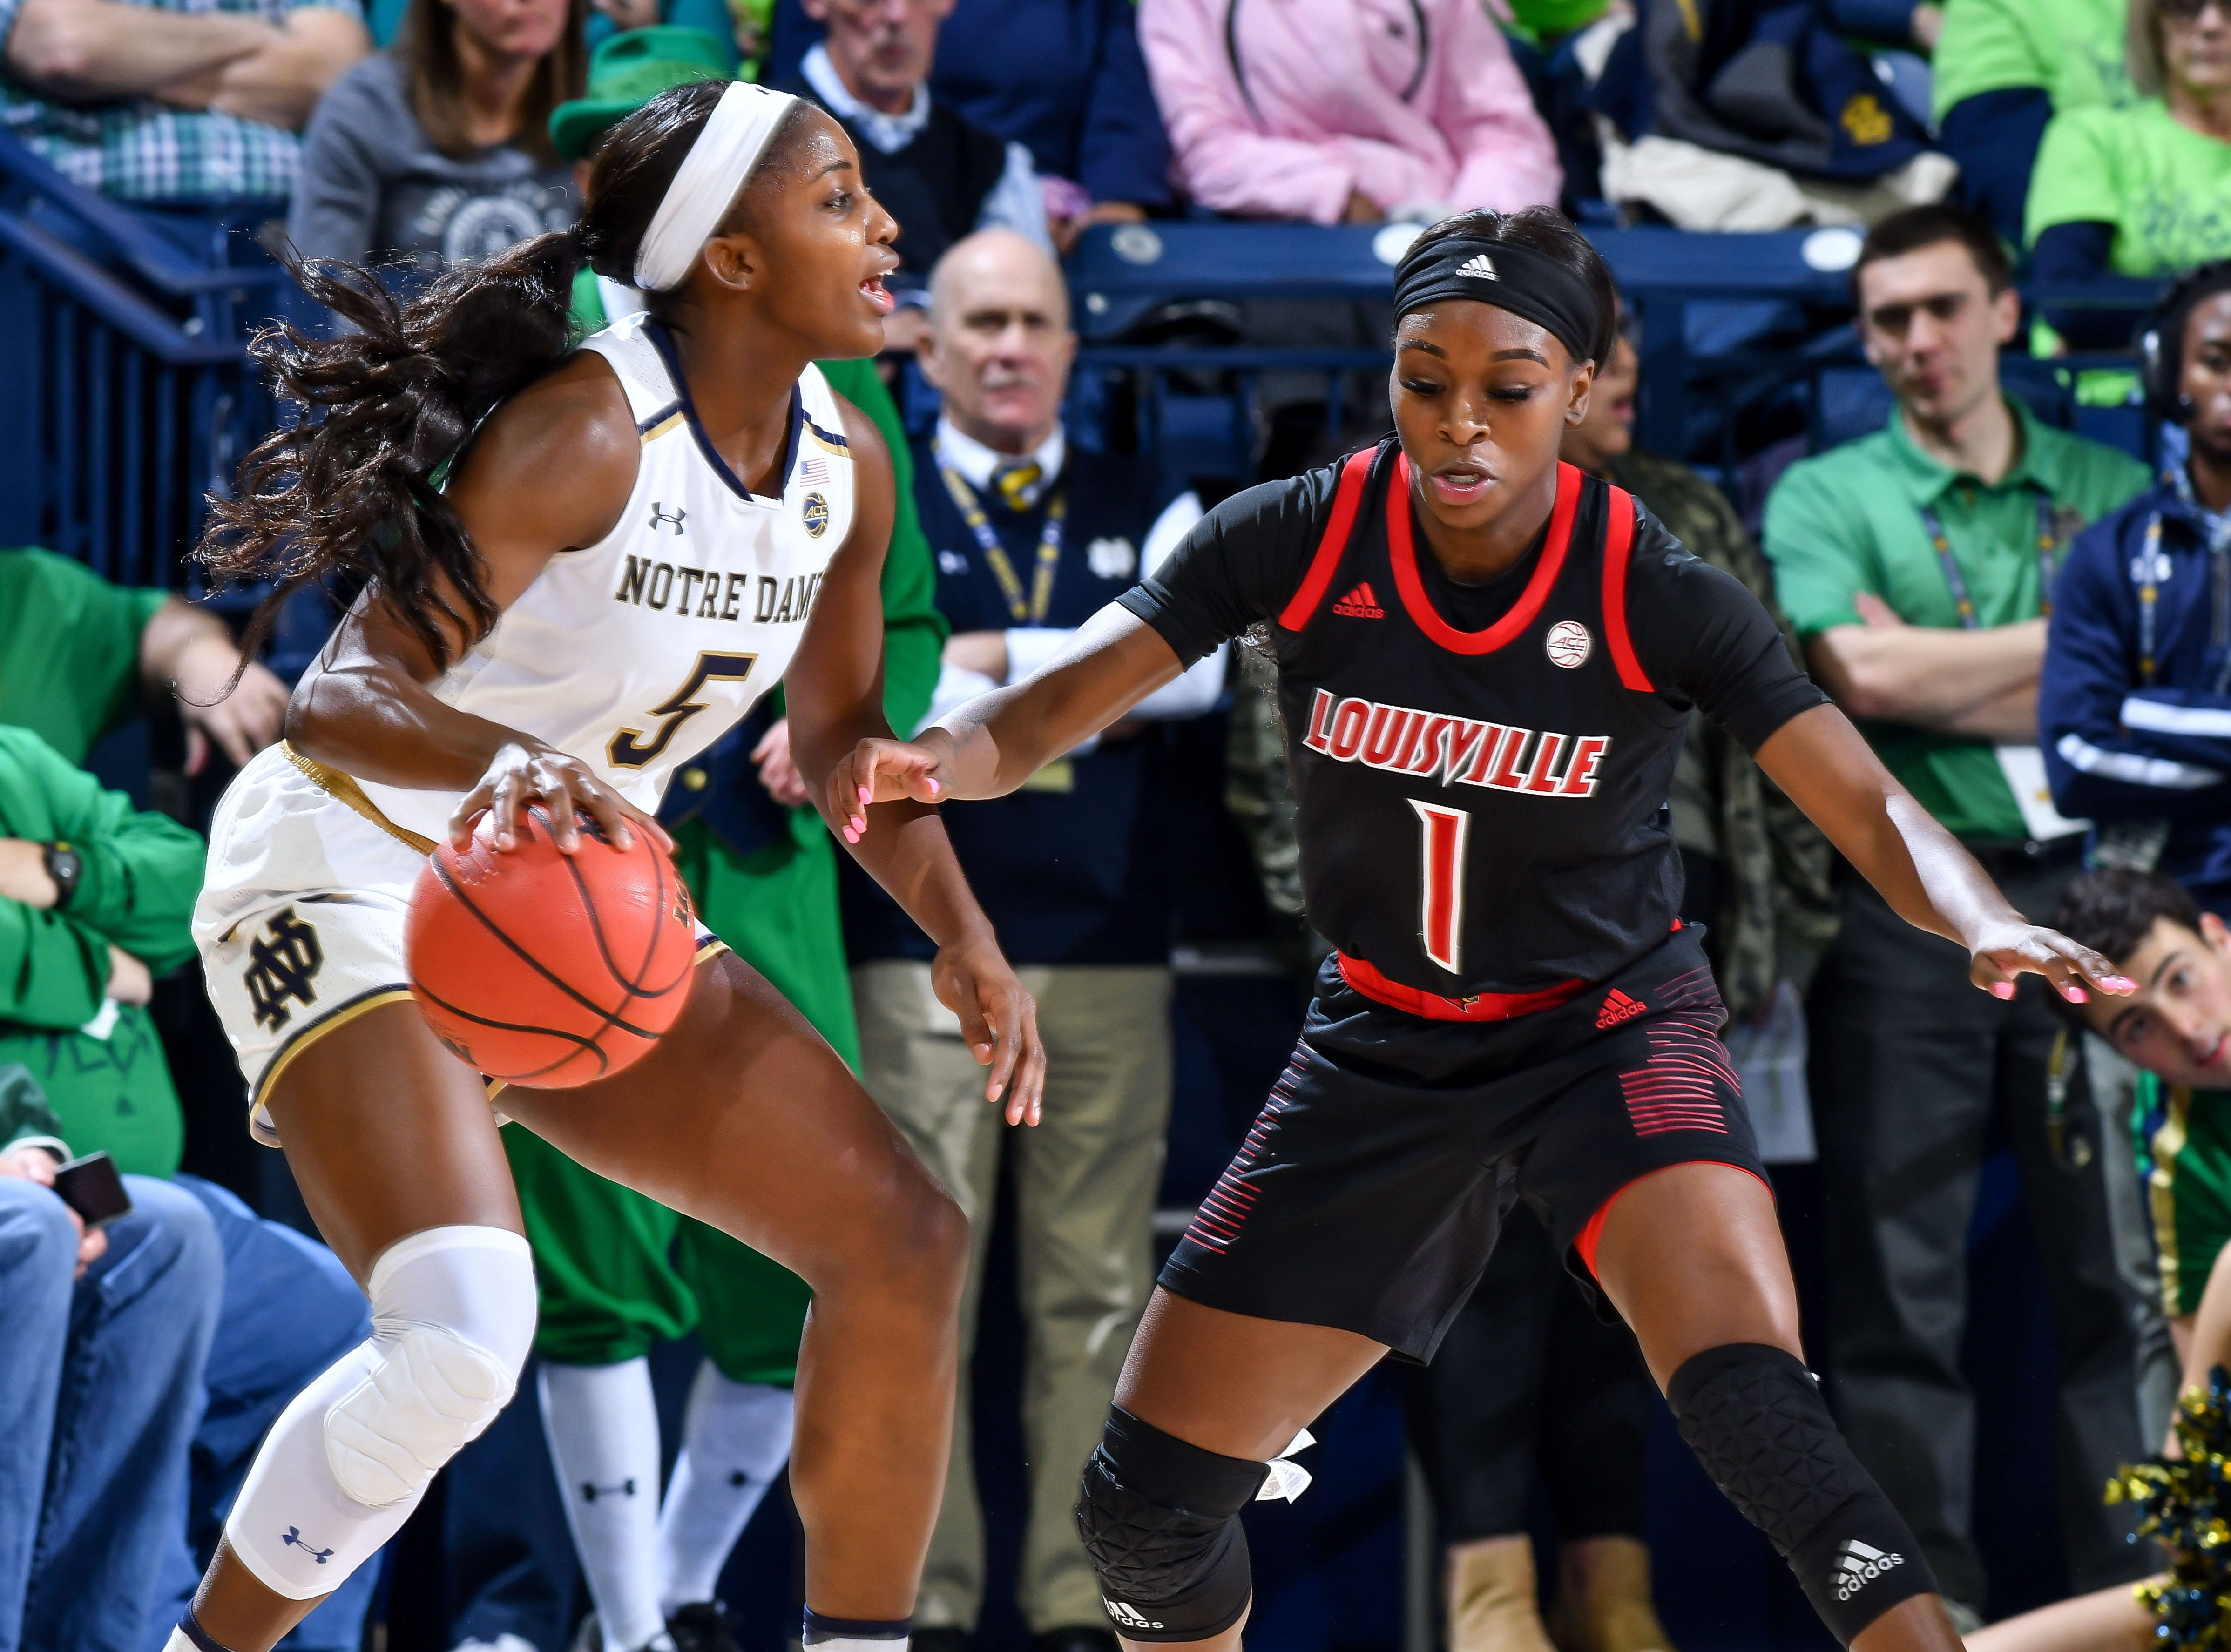 Jan 10, 2019; South Bend, IN, USA; Notre Dame Fighting Irish guard Jackie Young (5) dribbles as Louisville Cardinals guard Dana Evans (1) defends in the first half at the Purcell Pavilion. Mandatory Credit: Matt Cashore-USA TODAY Sports